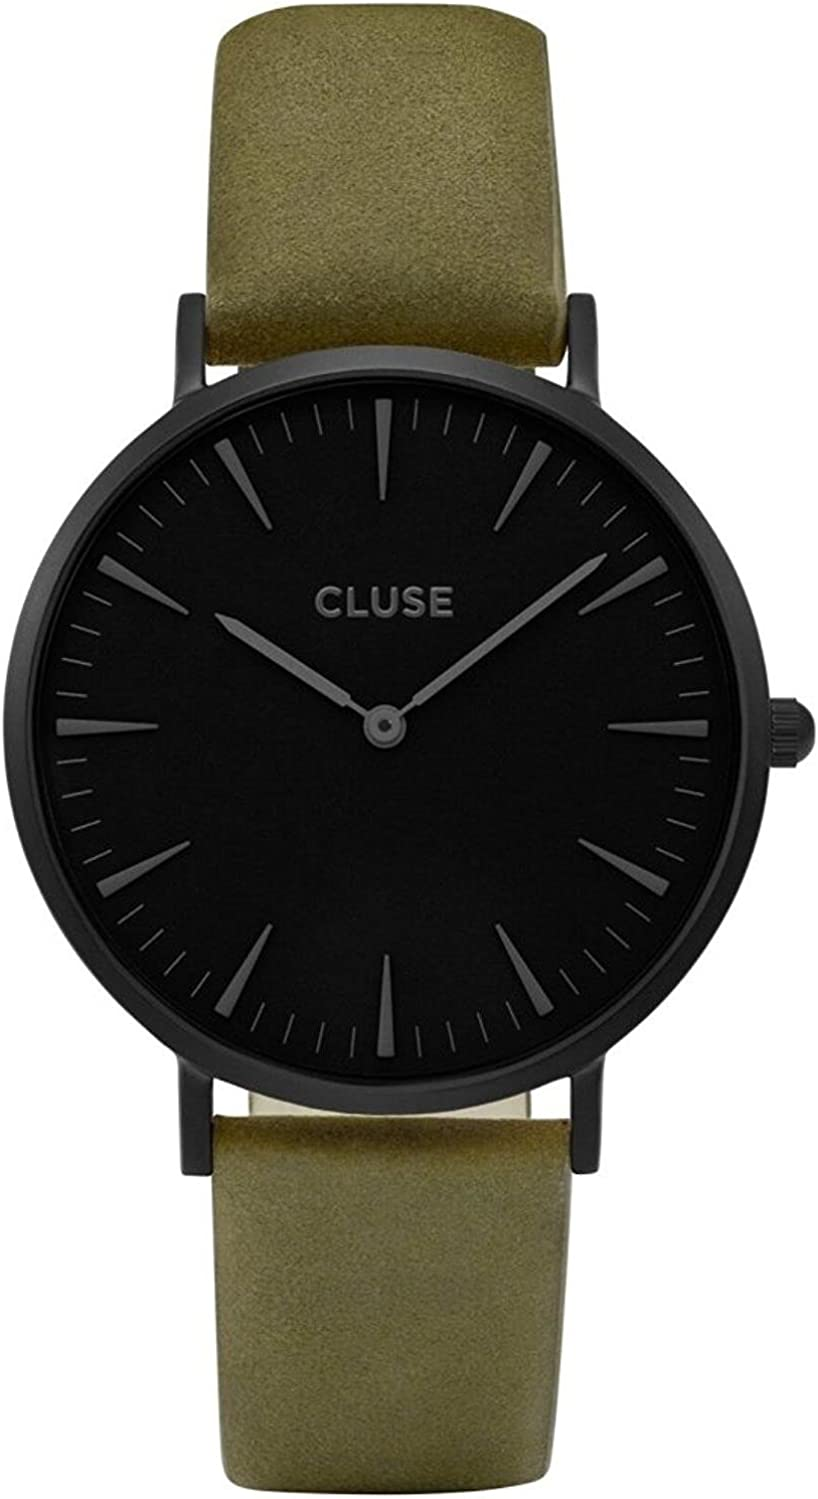 Cluse Women s La Boheme 38mm Green Leather Band Metal Case Quartz Black Dial Analog Watch CL18502